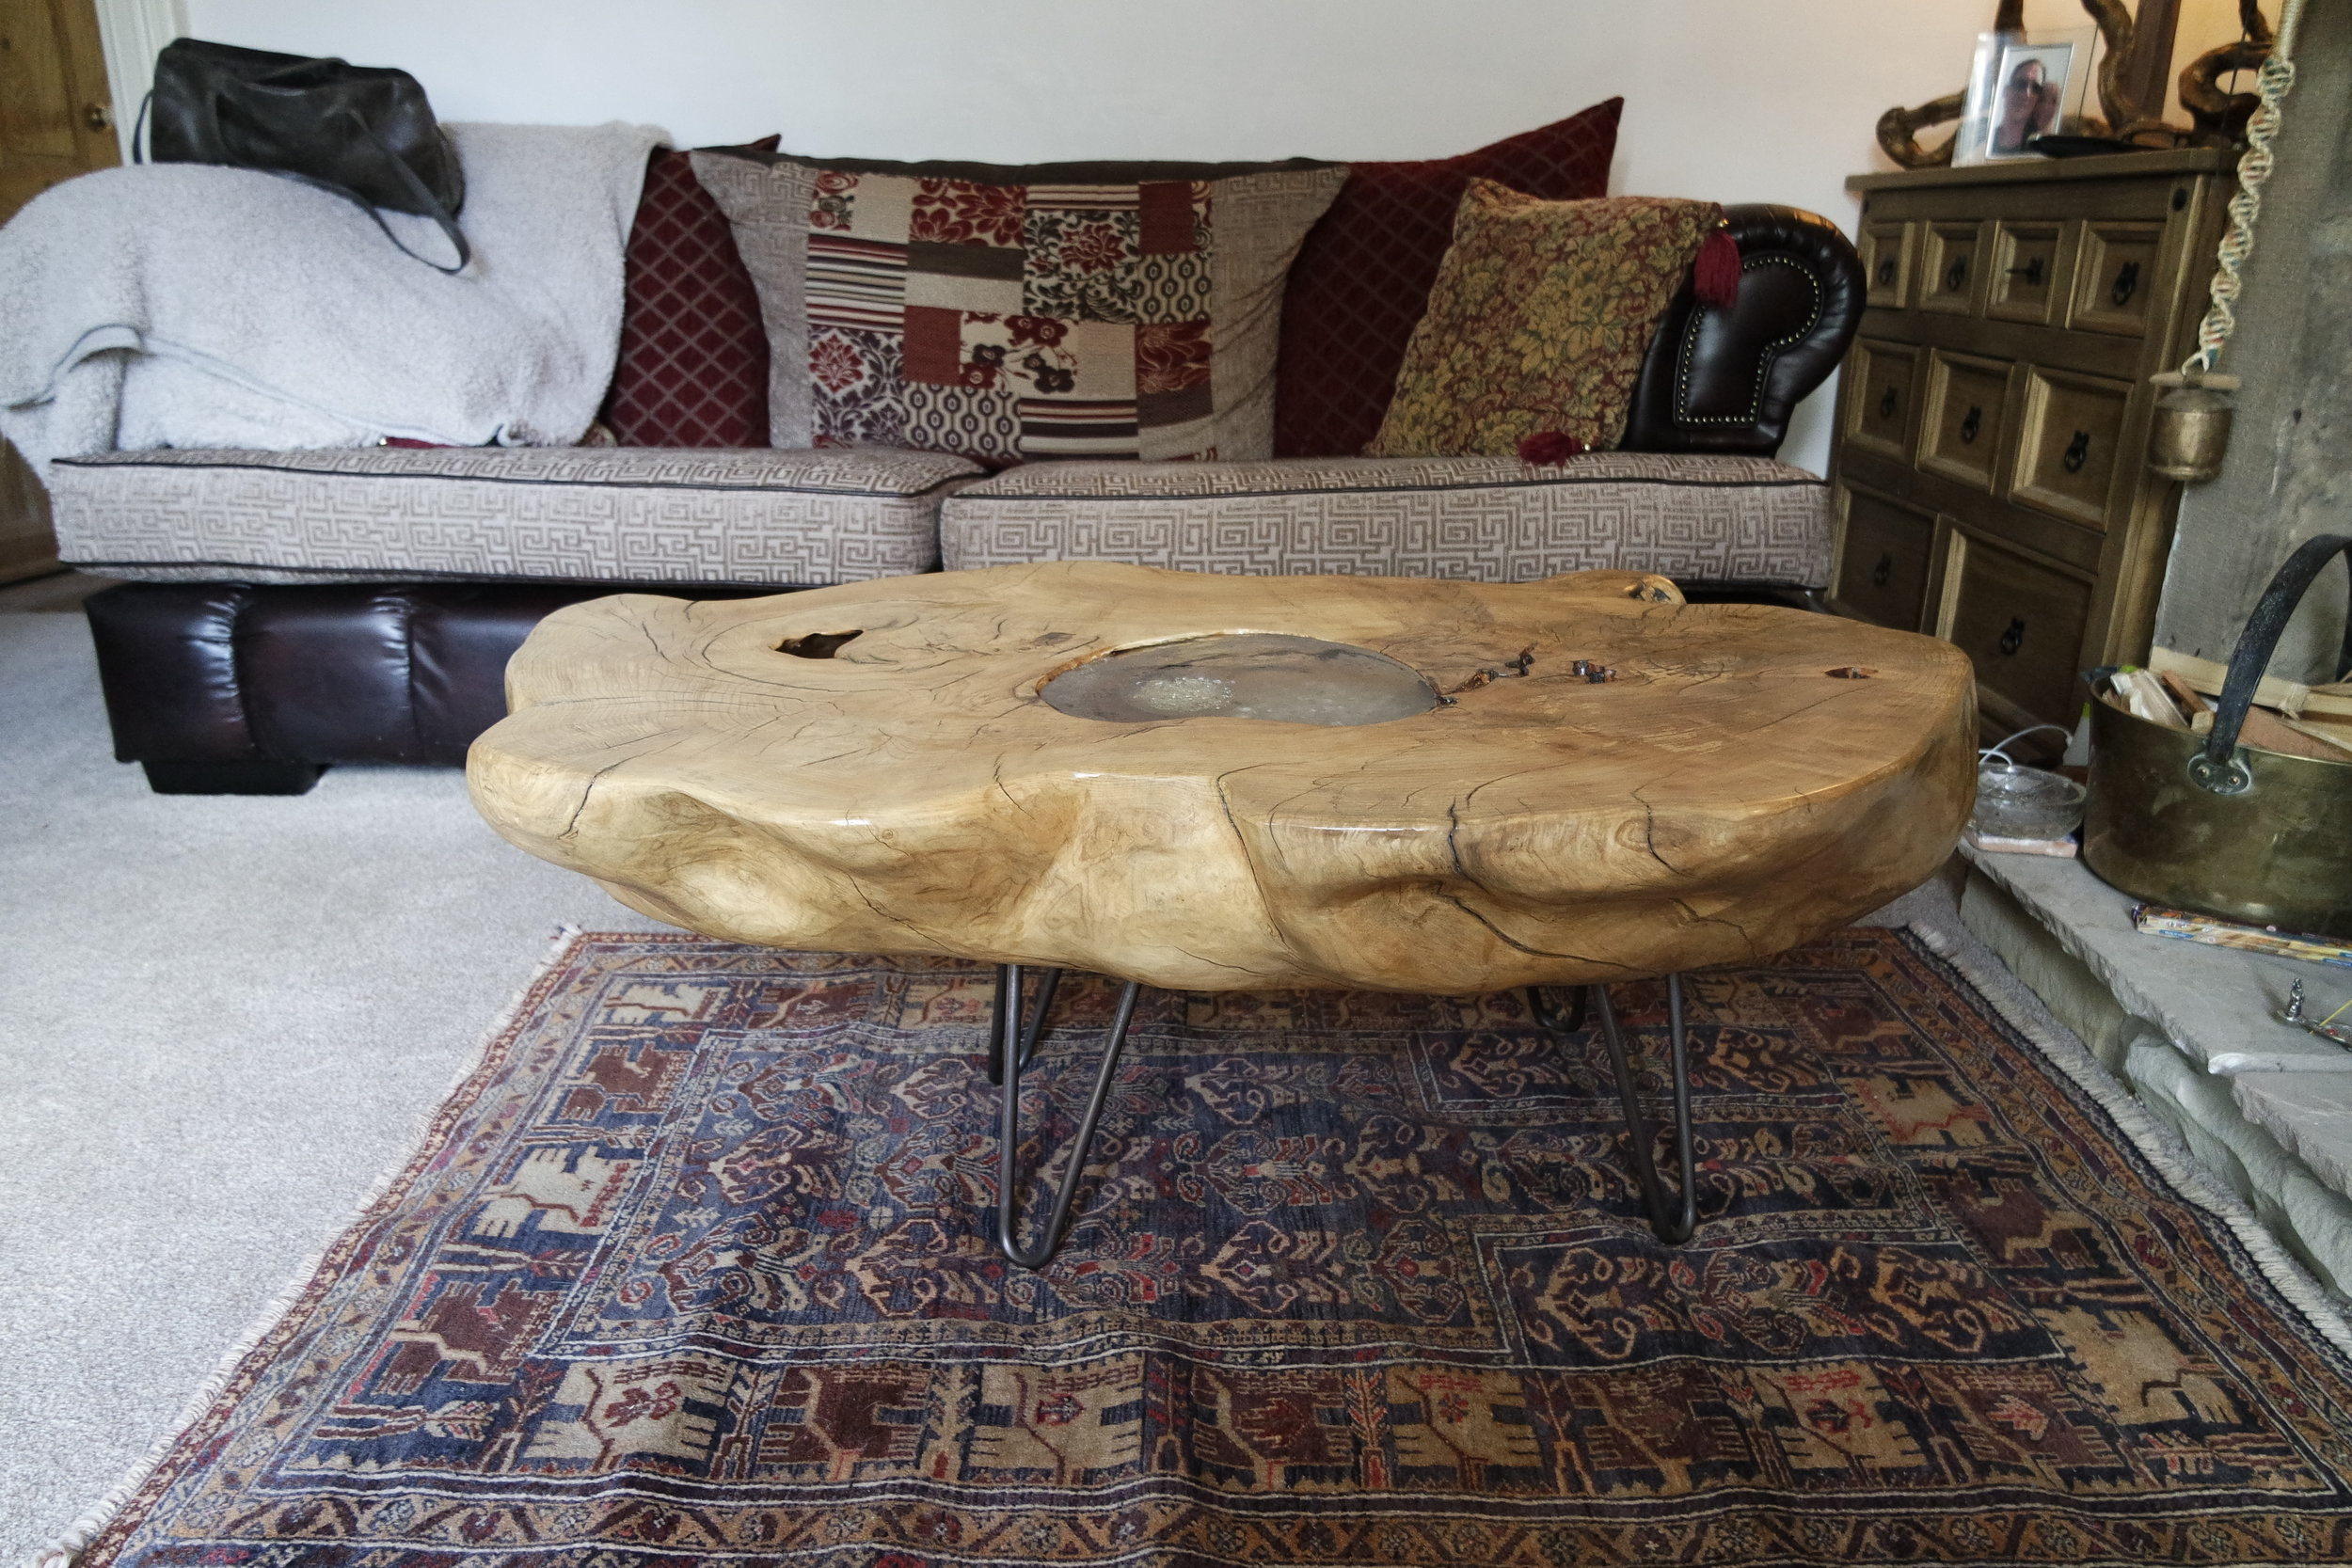 The Finished Table in its new home